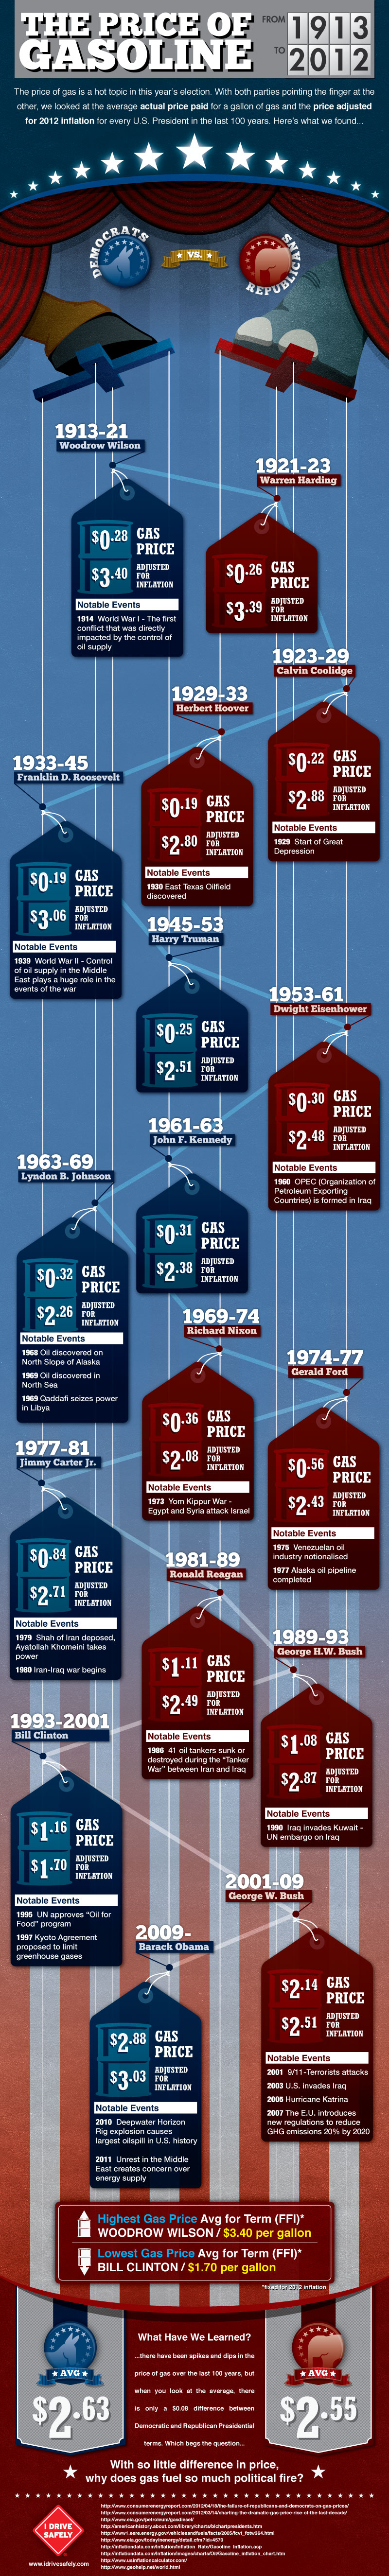 democrats-vs-republicans-gas-prices-of-the-last-100-years_509859ce951c6